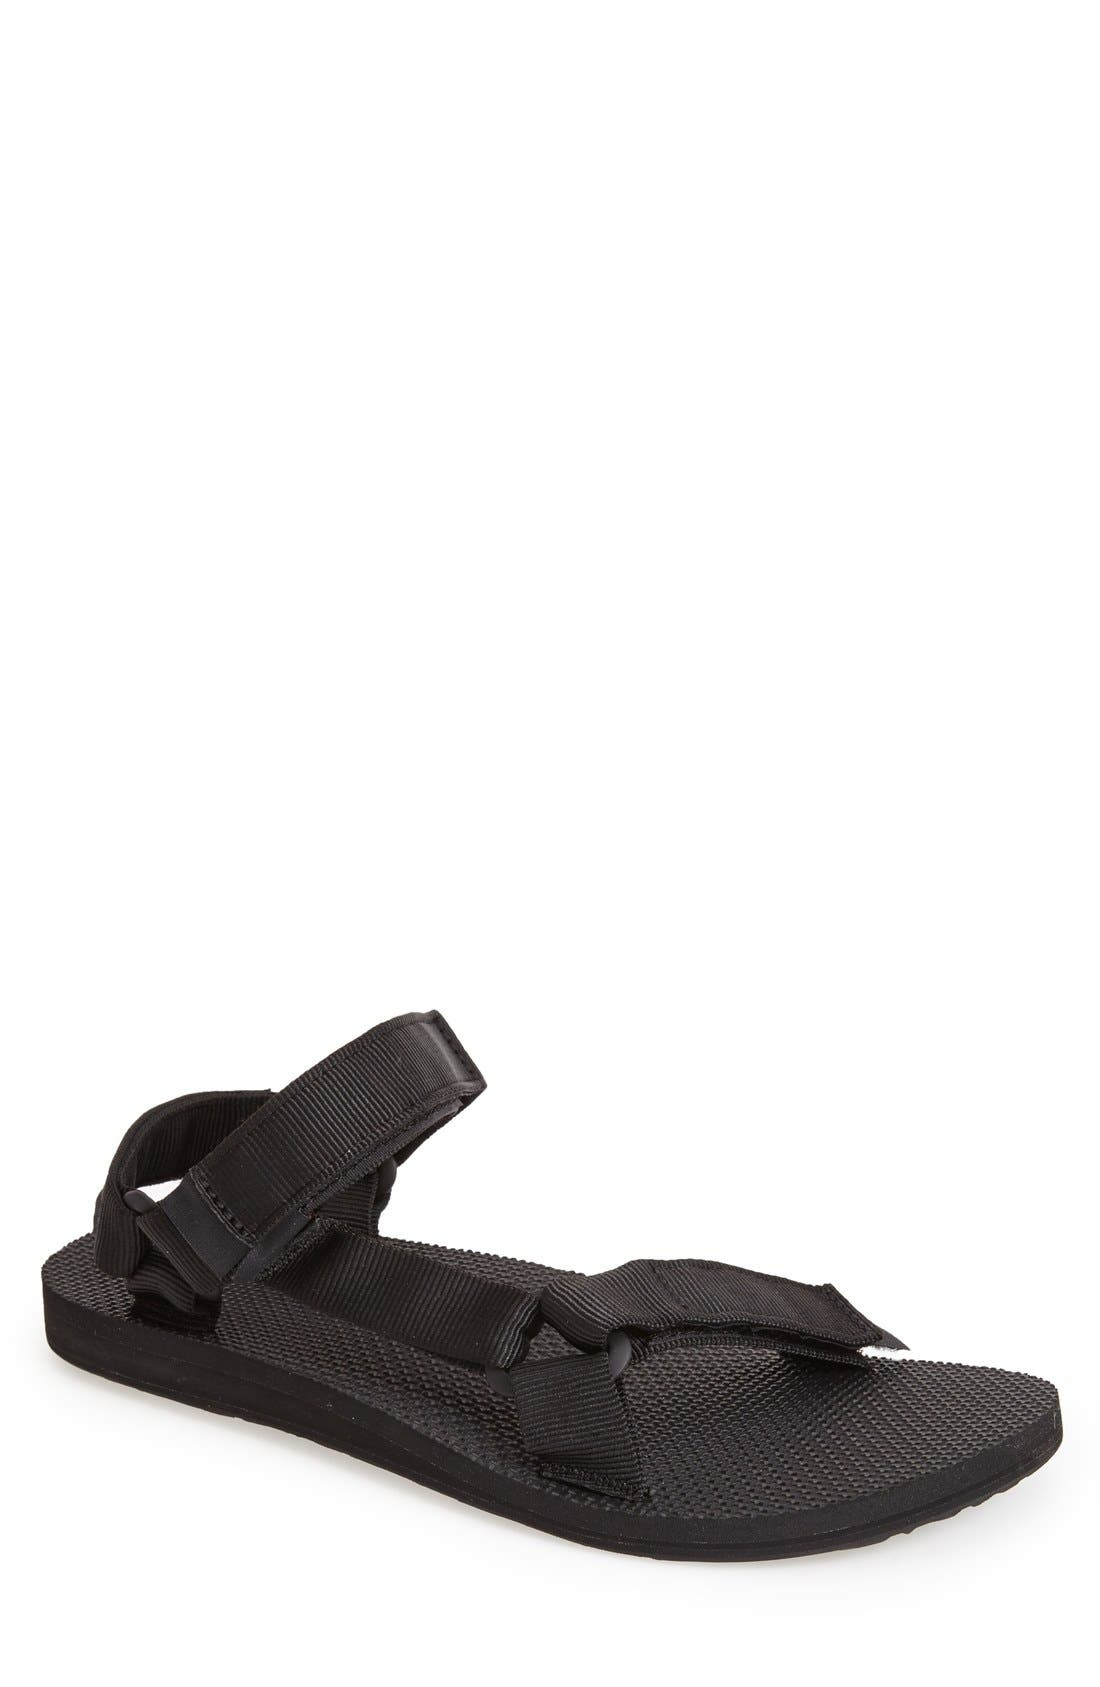 Main Image - Teva 'Original Universal Urban' Sandal (Men)